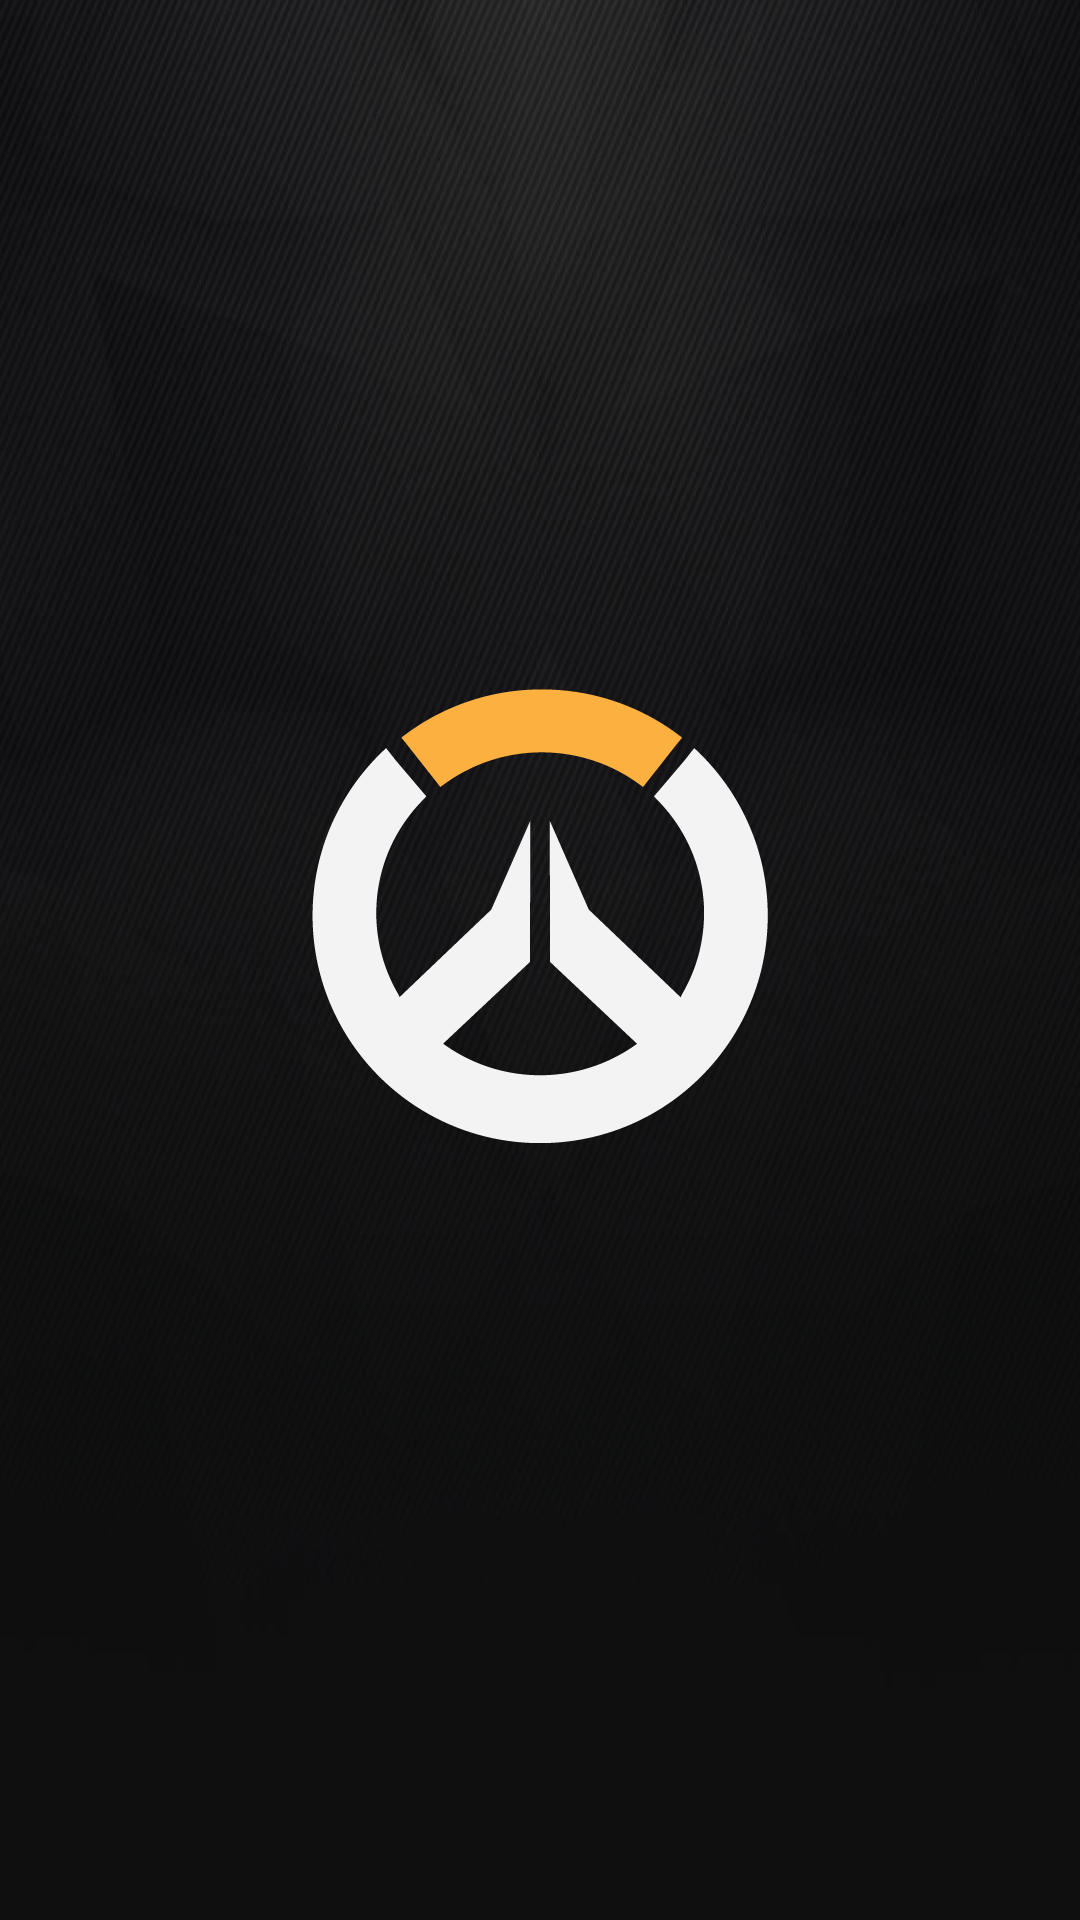 Overwatch Mobile Wallpaper Dump Post Overwatch Wallpapers Overwatch Mobile Wallpaper Overwatch Phone Wallpaper